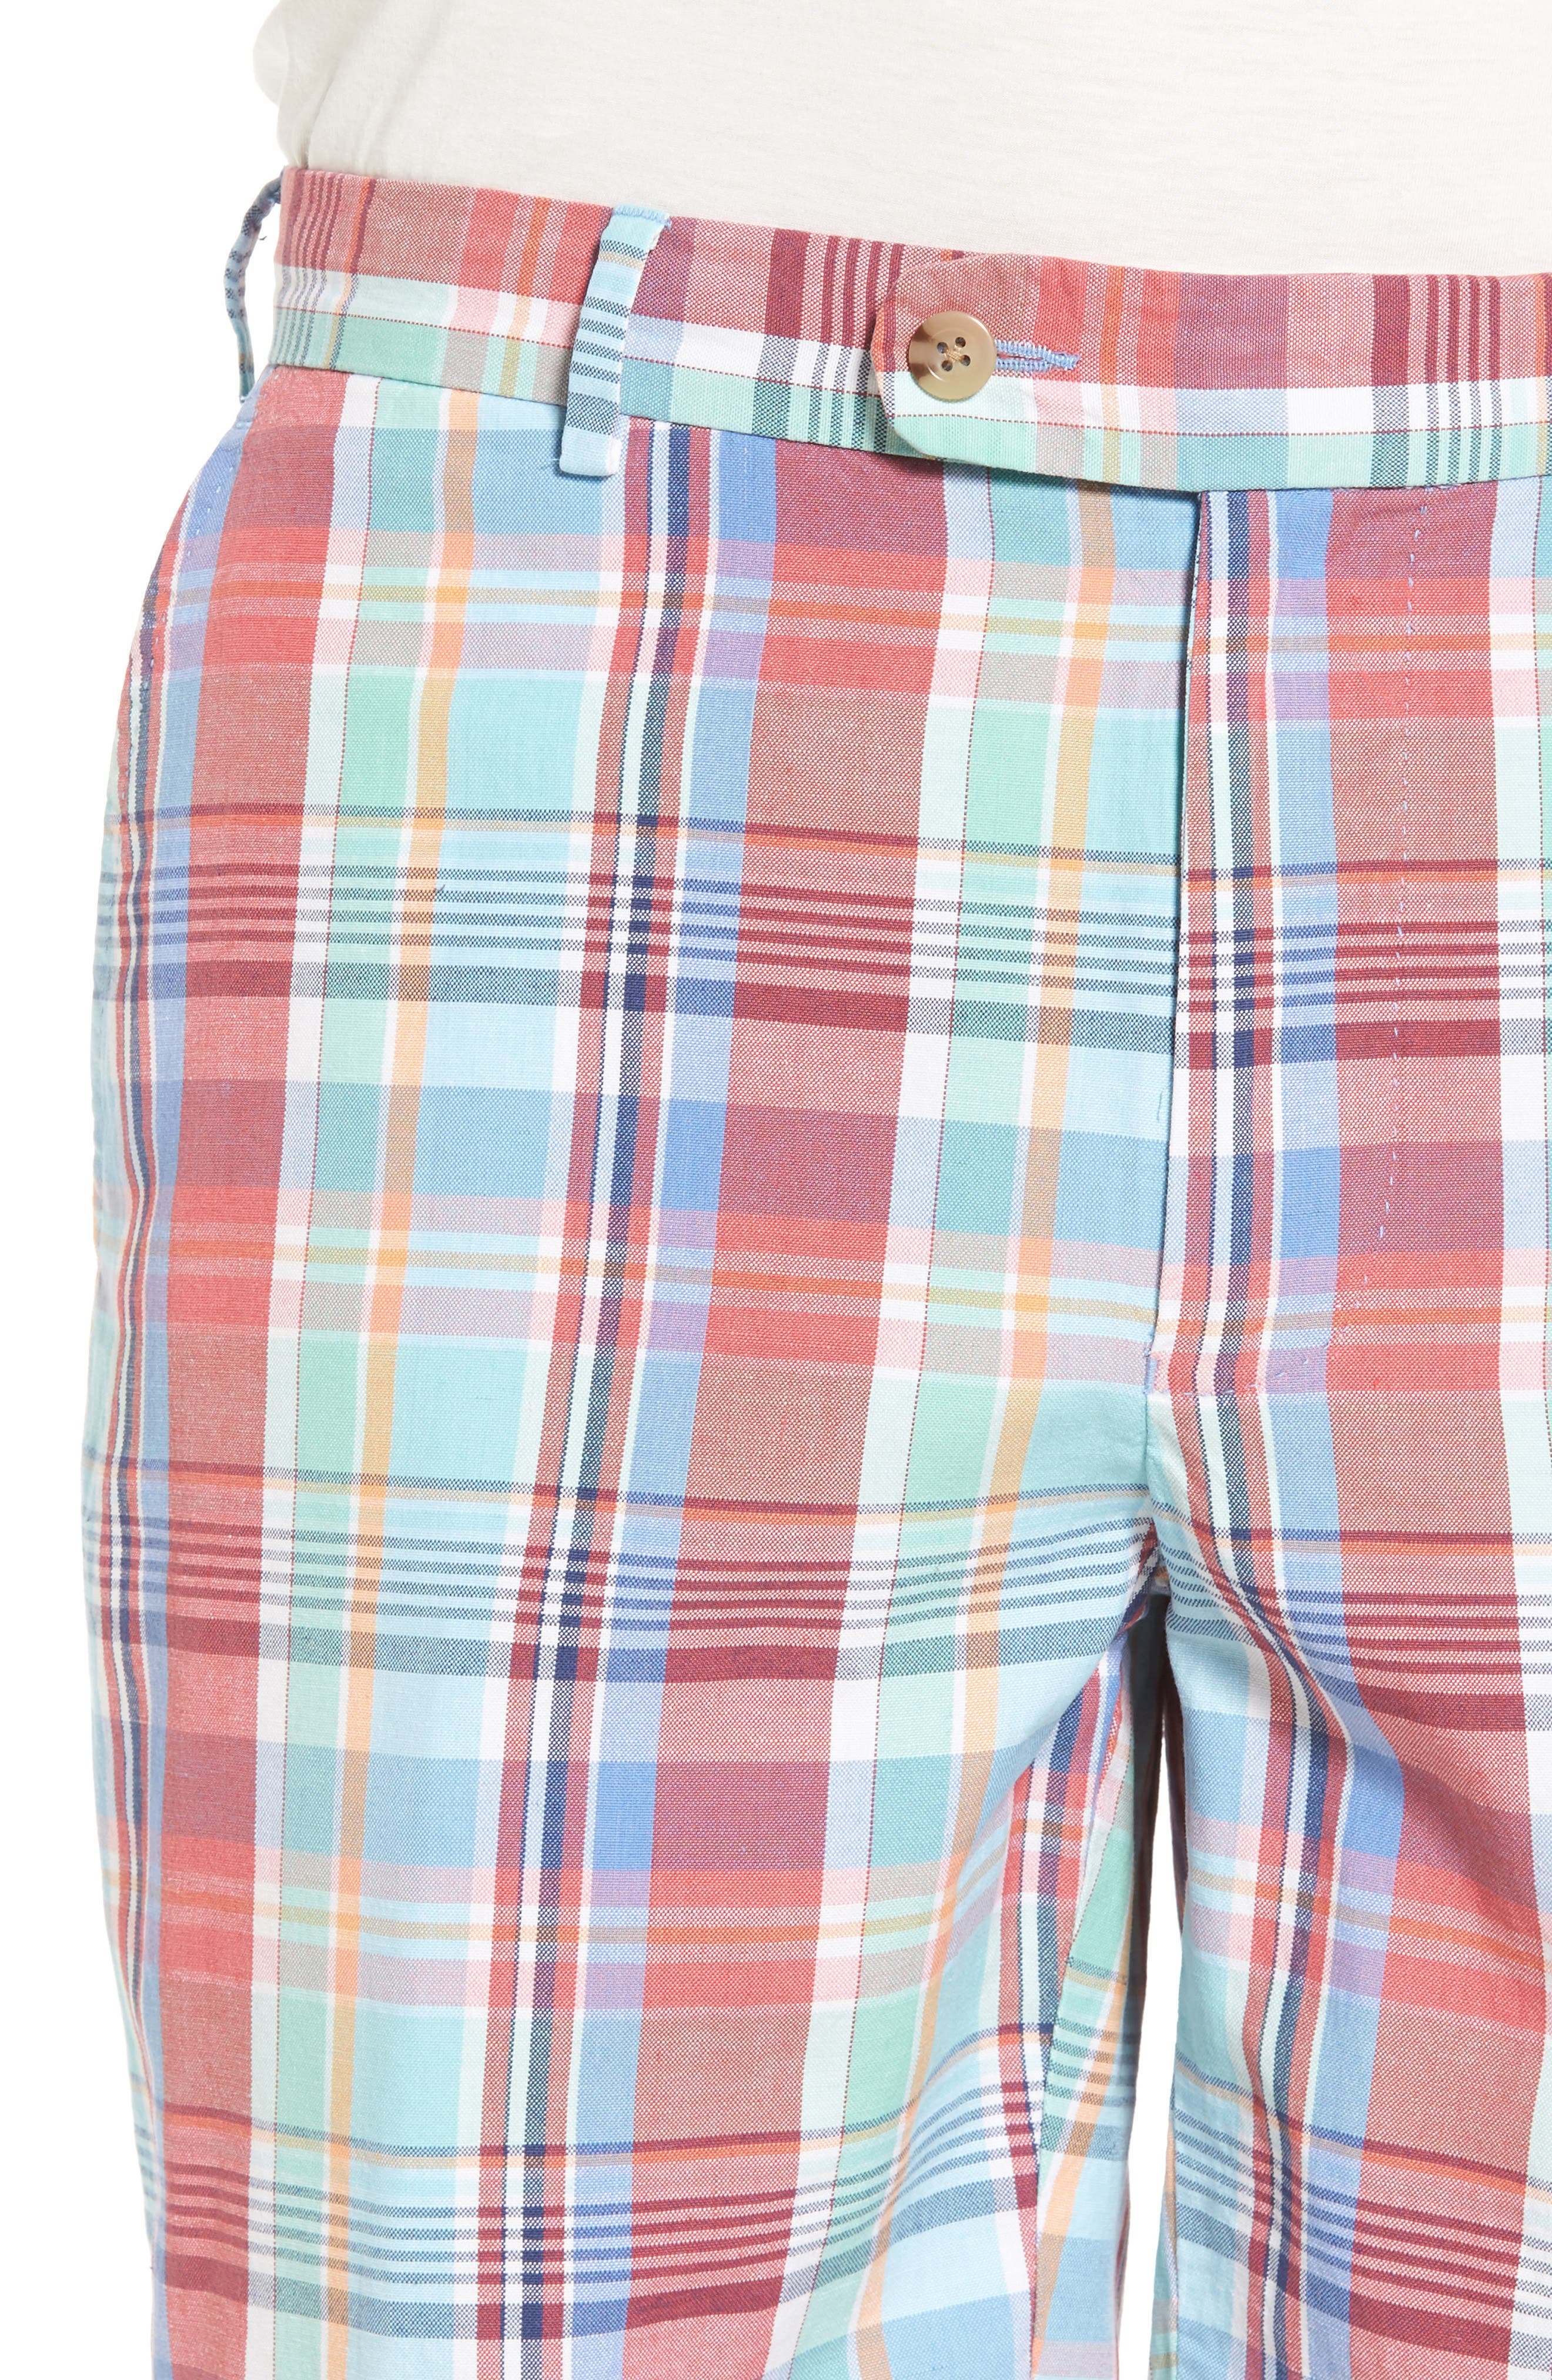 Seaside Madras Plaid Shorts,                             Alternate thumbnail 4, color,                             Cape Red